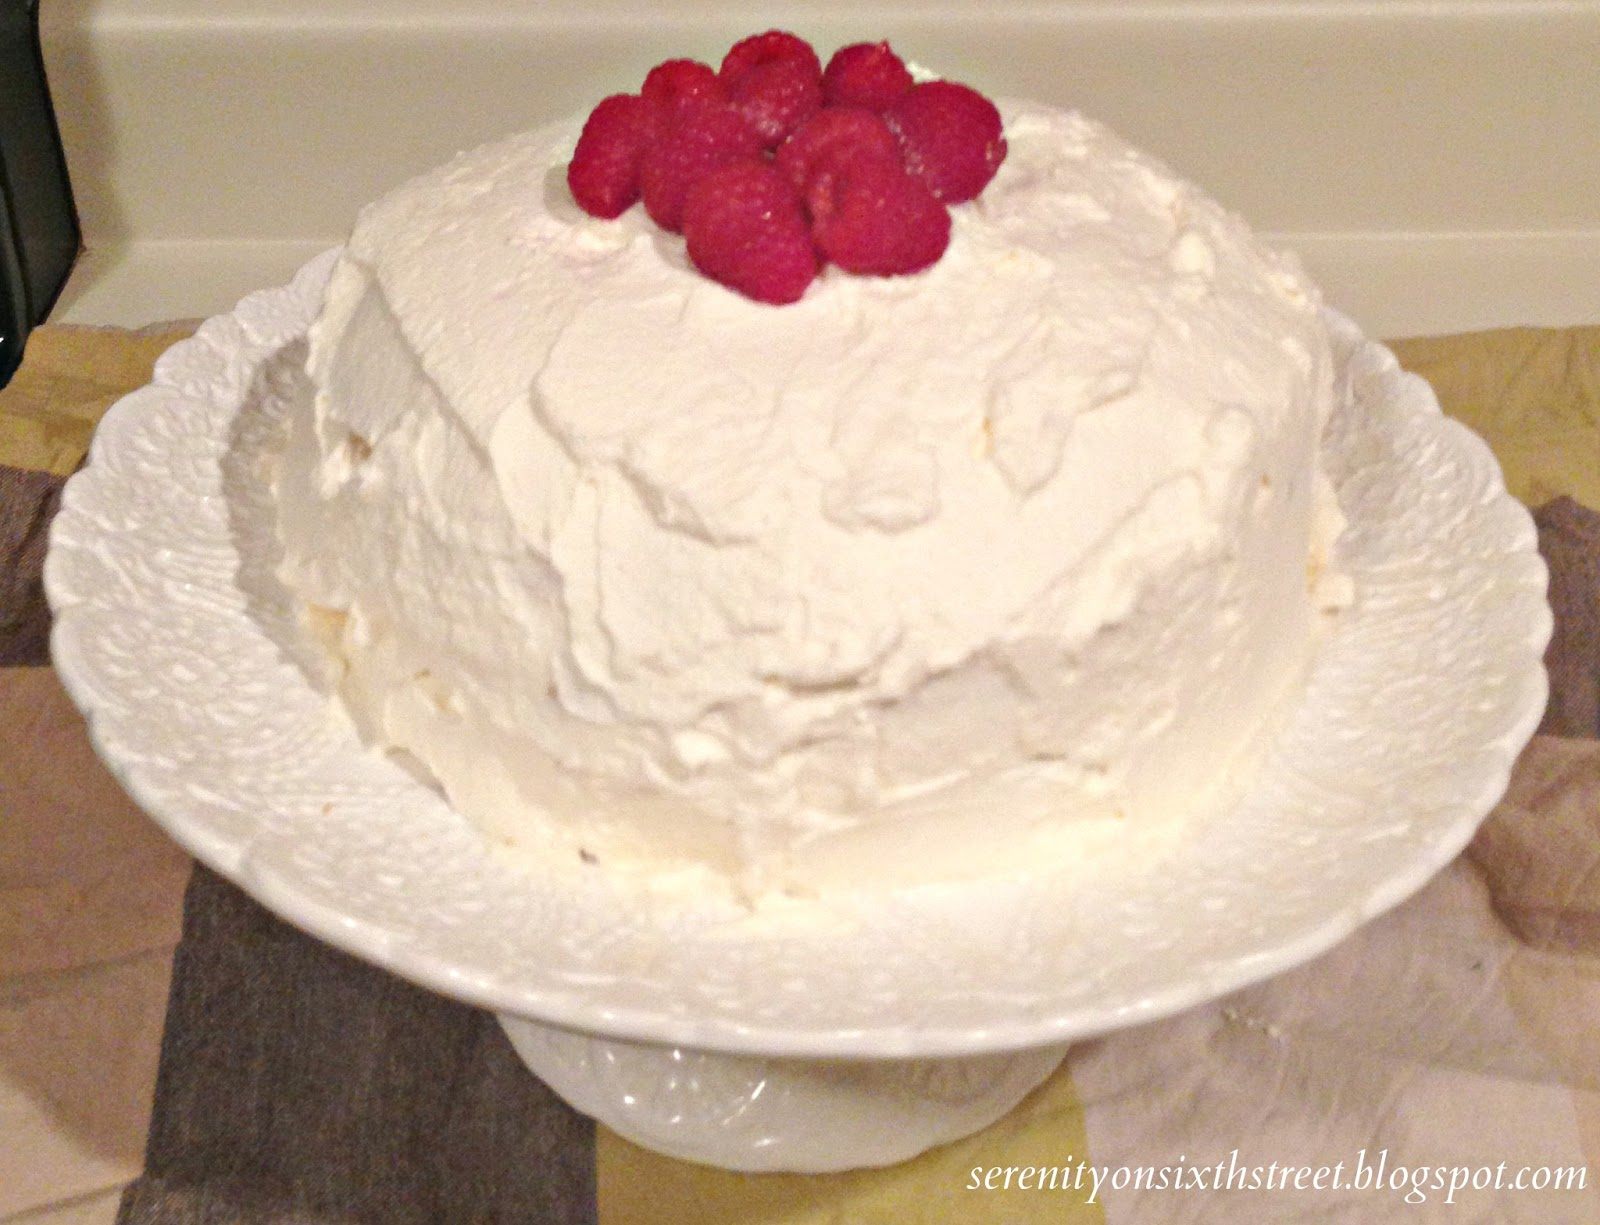 Serenity on Sixth Street: Diet Cake with Whipped Cream Frosting